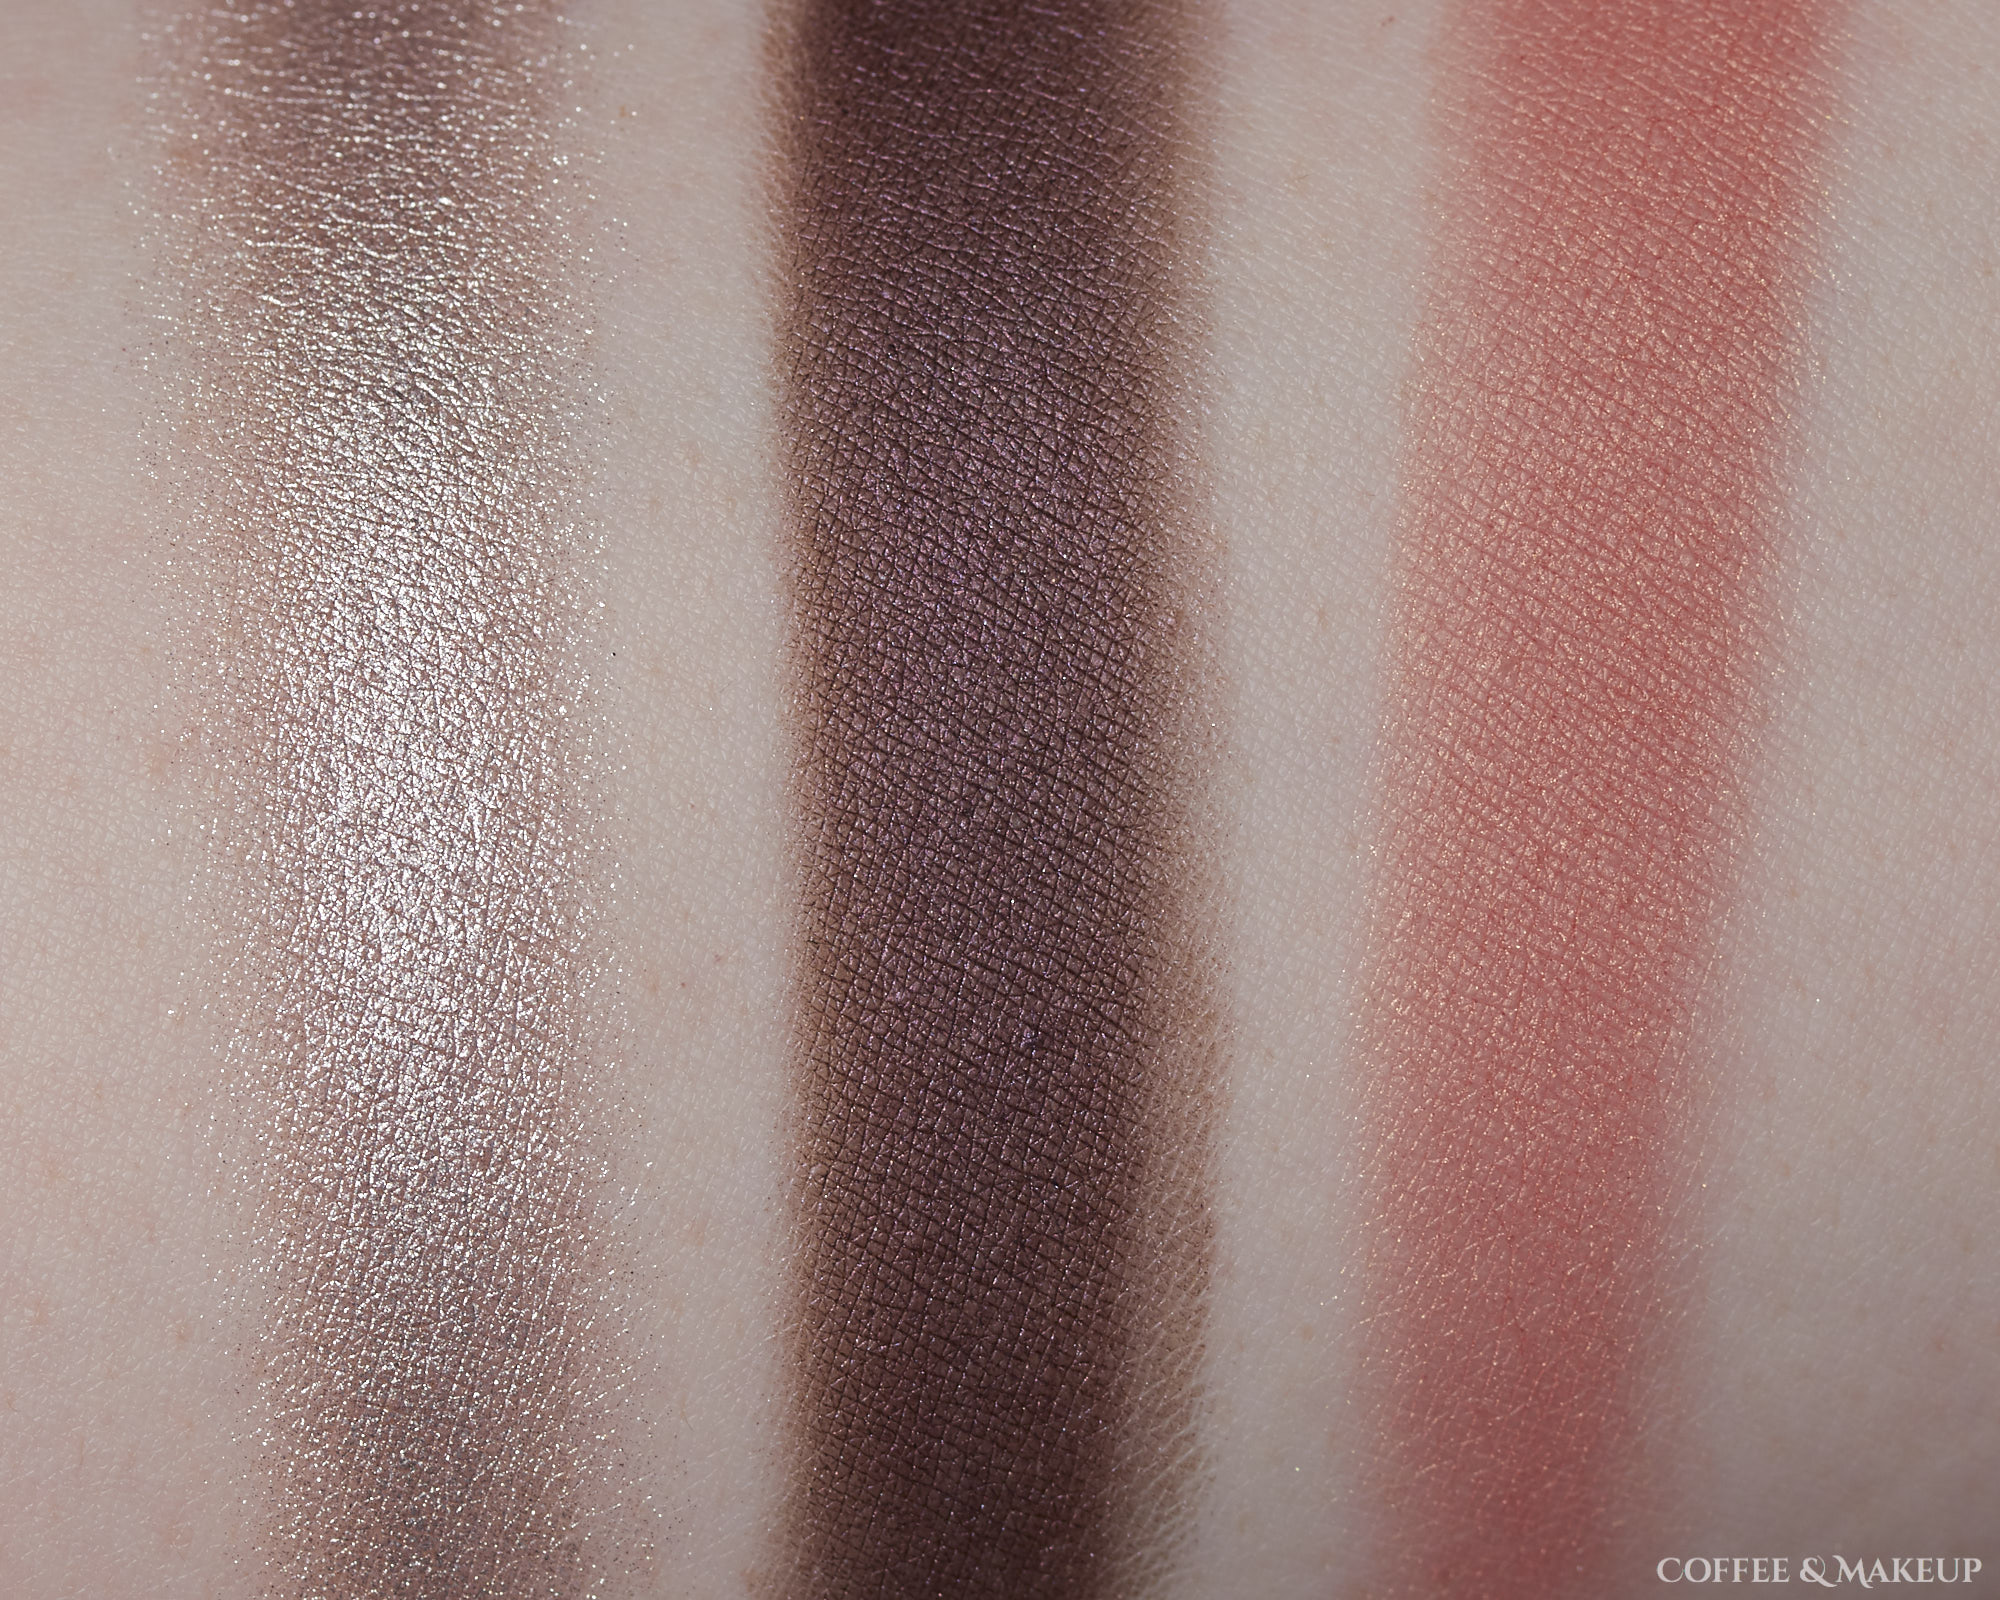 Revlon Bold Creme Eyeshadows in Stardust (left) and Merlot (center) | Loreal Enchanted Paradise Scented Blush in Fantastical (right)